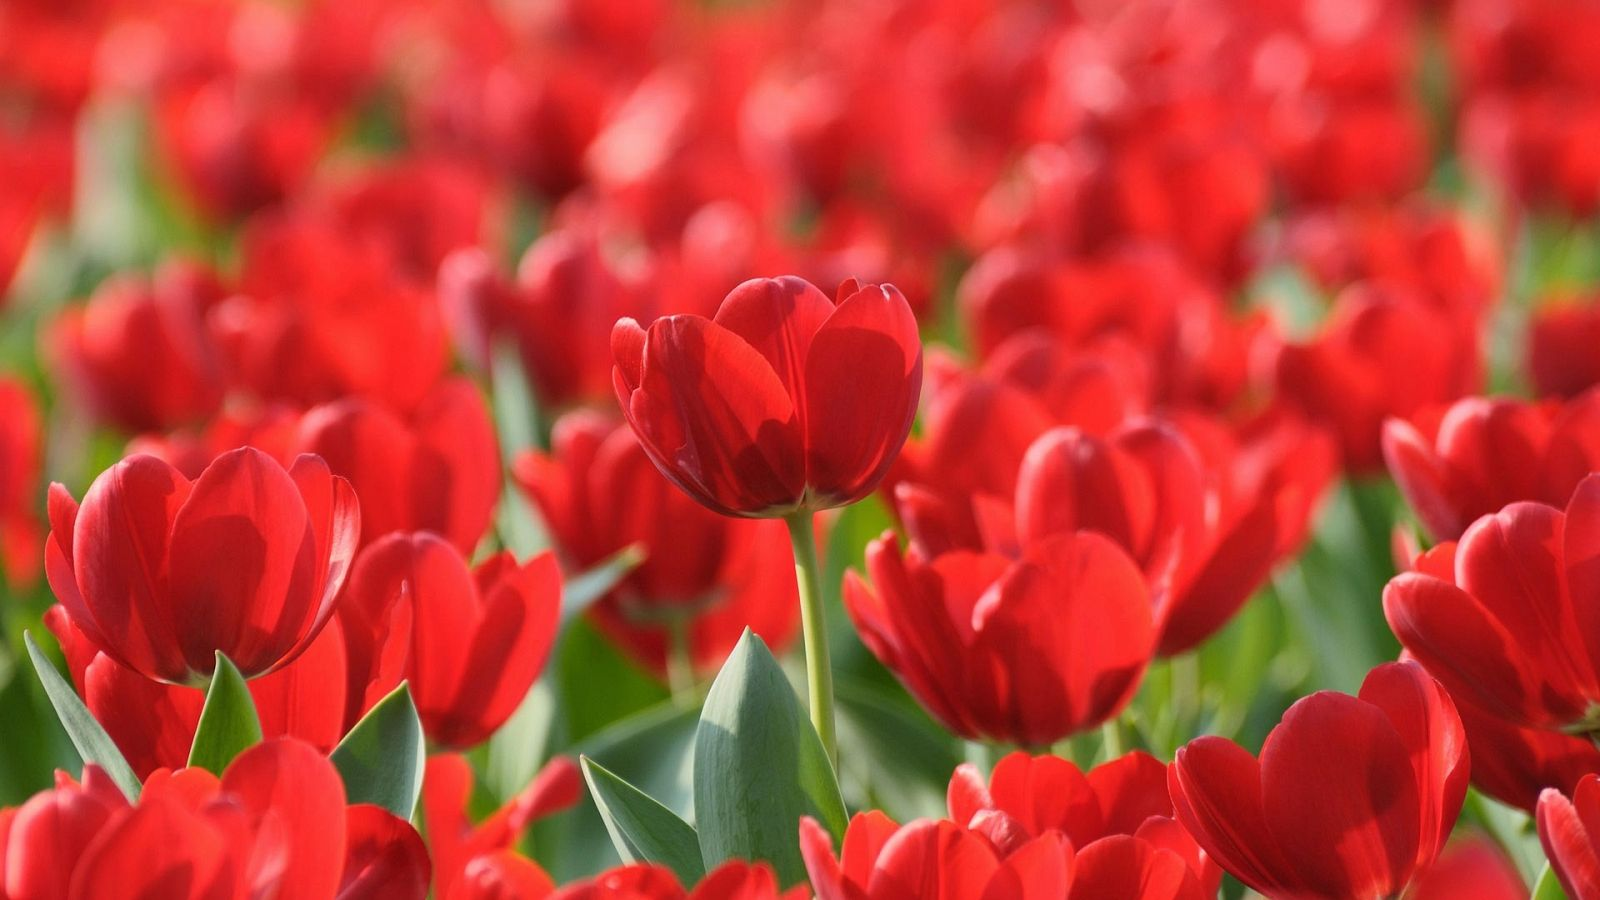 The Wallpapers Of Tulips